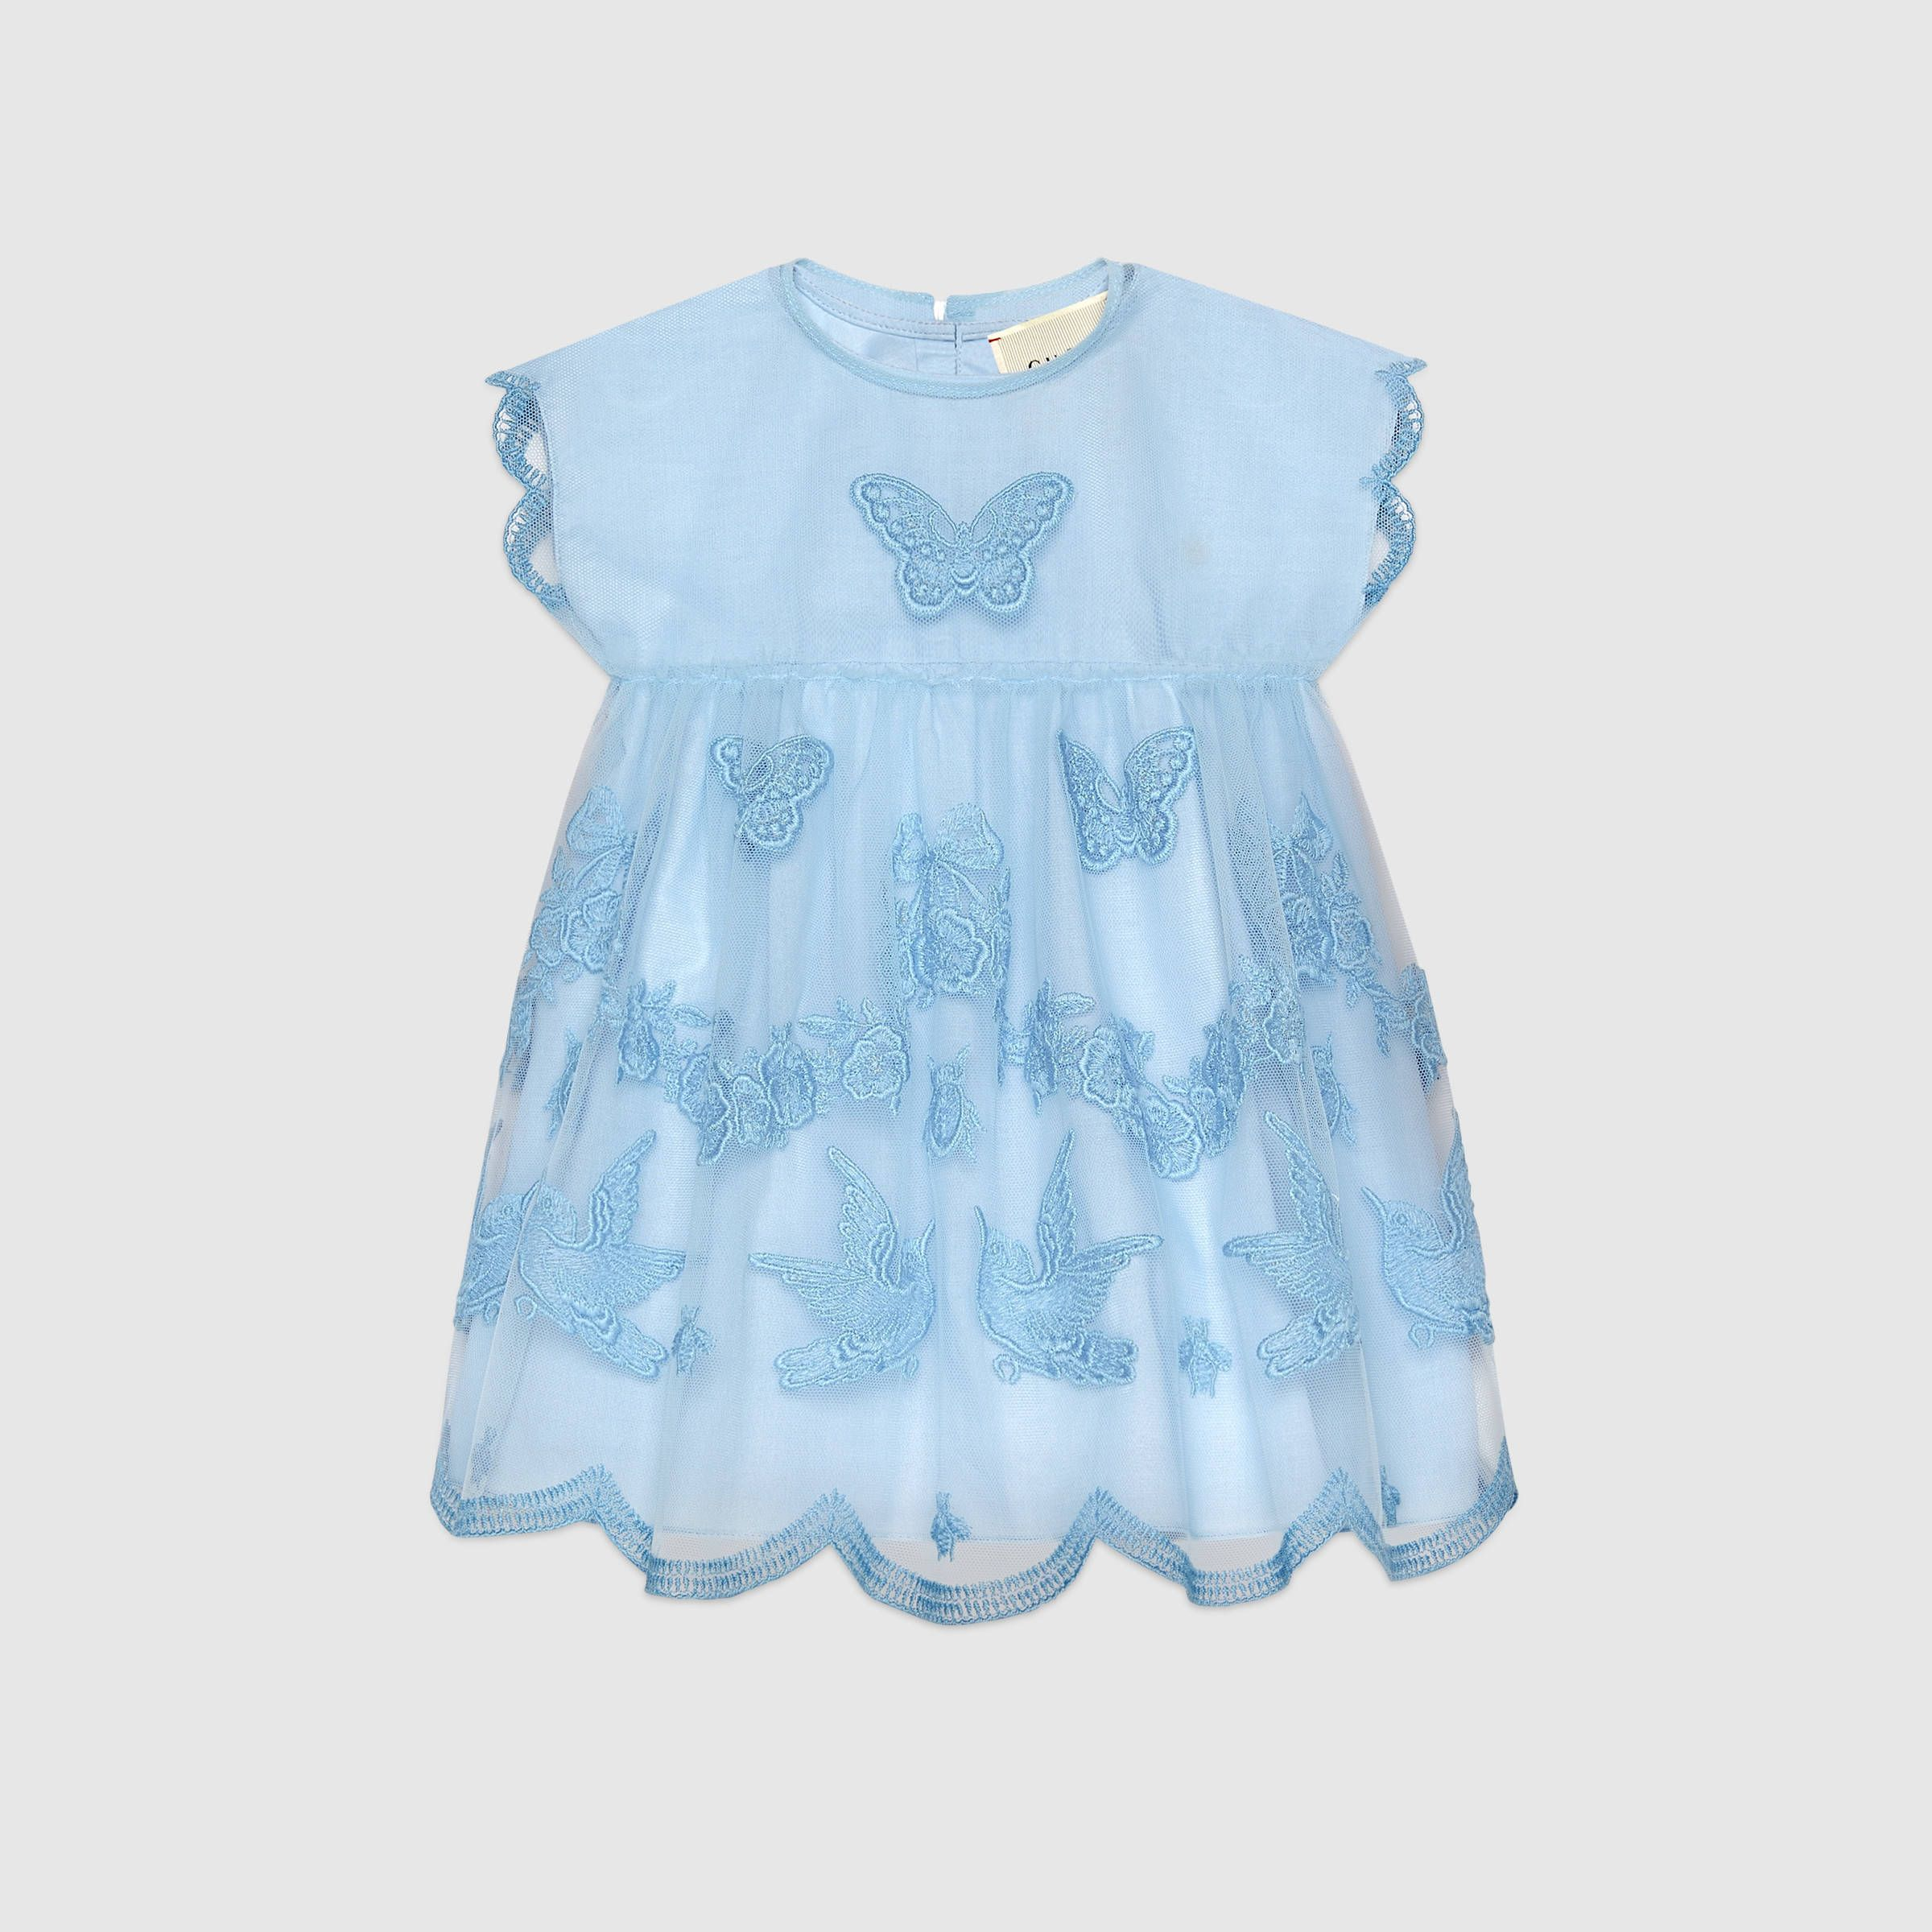 Baby tulle dress with embroidery peggy Pinterest